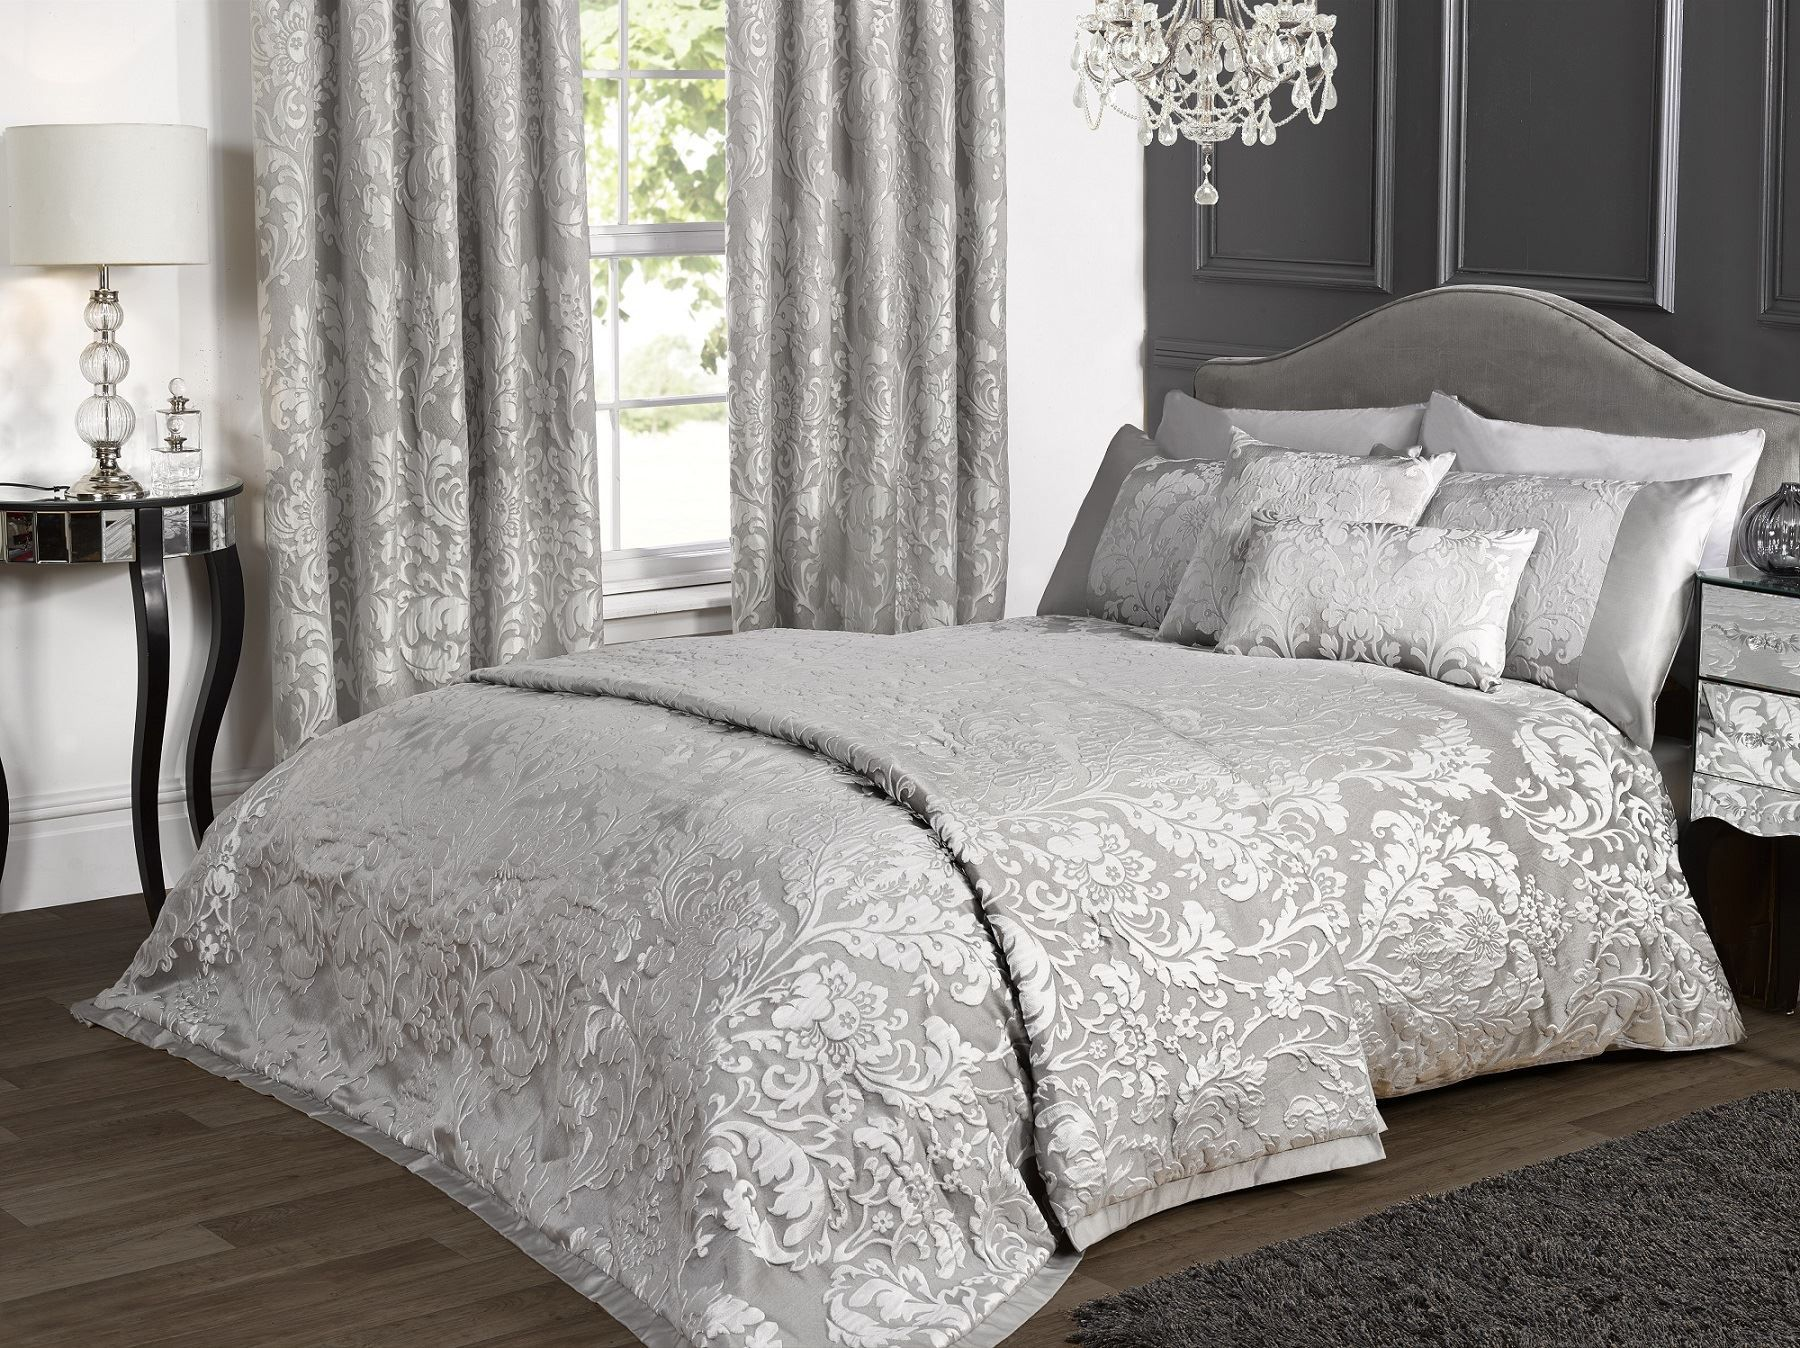 Black and white floral bed sheets - Details About Marston Damask Duvet Cover Embossed Floral Motif Silver Grey Quilt Bedding Set